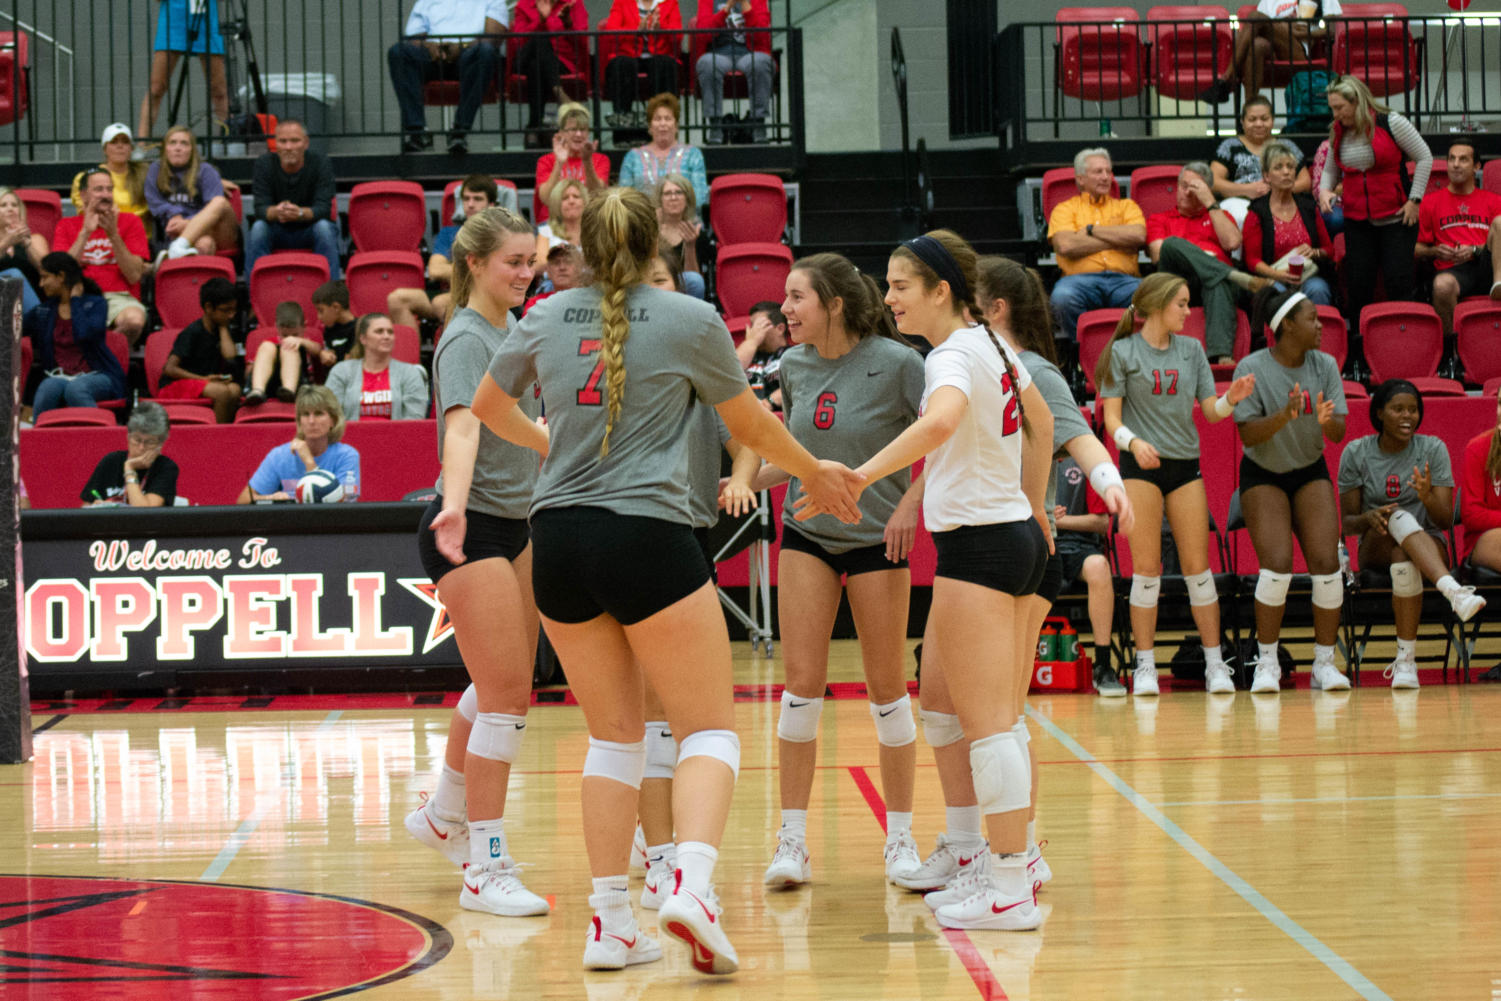 The Coppell High School Varsity Volleyball team celebrates their victory against MacArthur. The Coppell Cowgirls won the game 3-0 25-15, 25-23, 25-6.